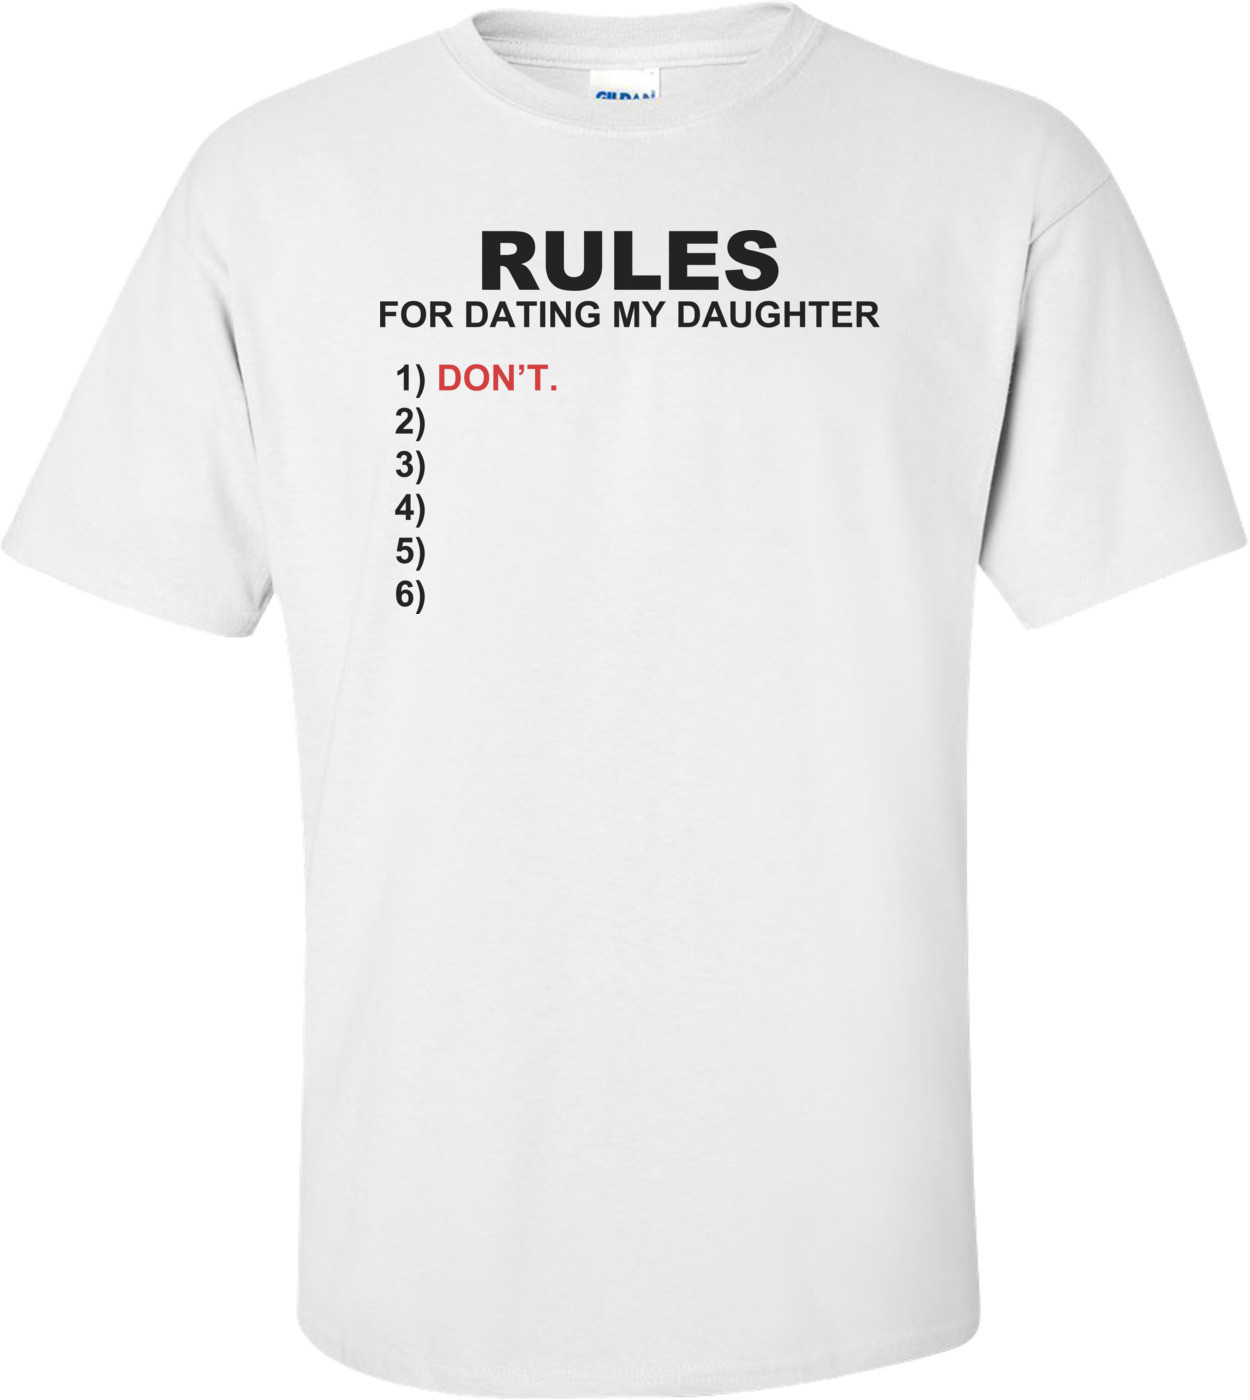 Rules For Dating My Daughter... Don't! Shirt